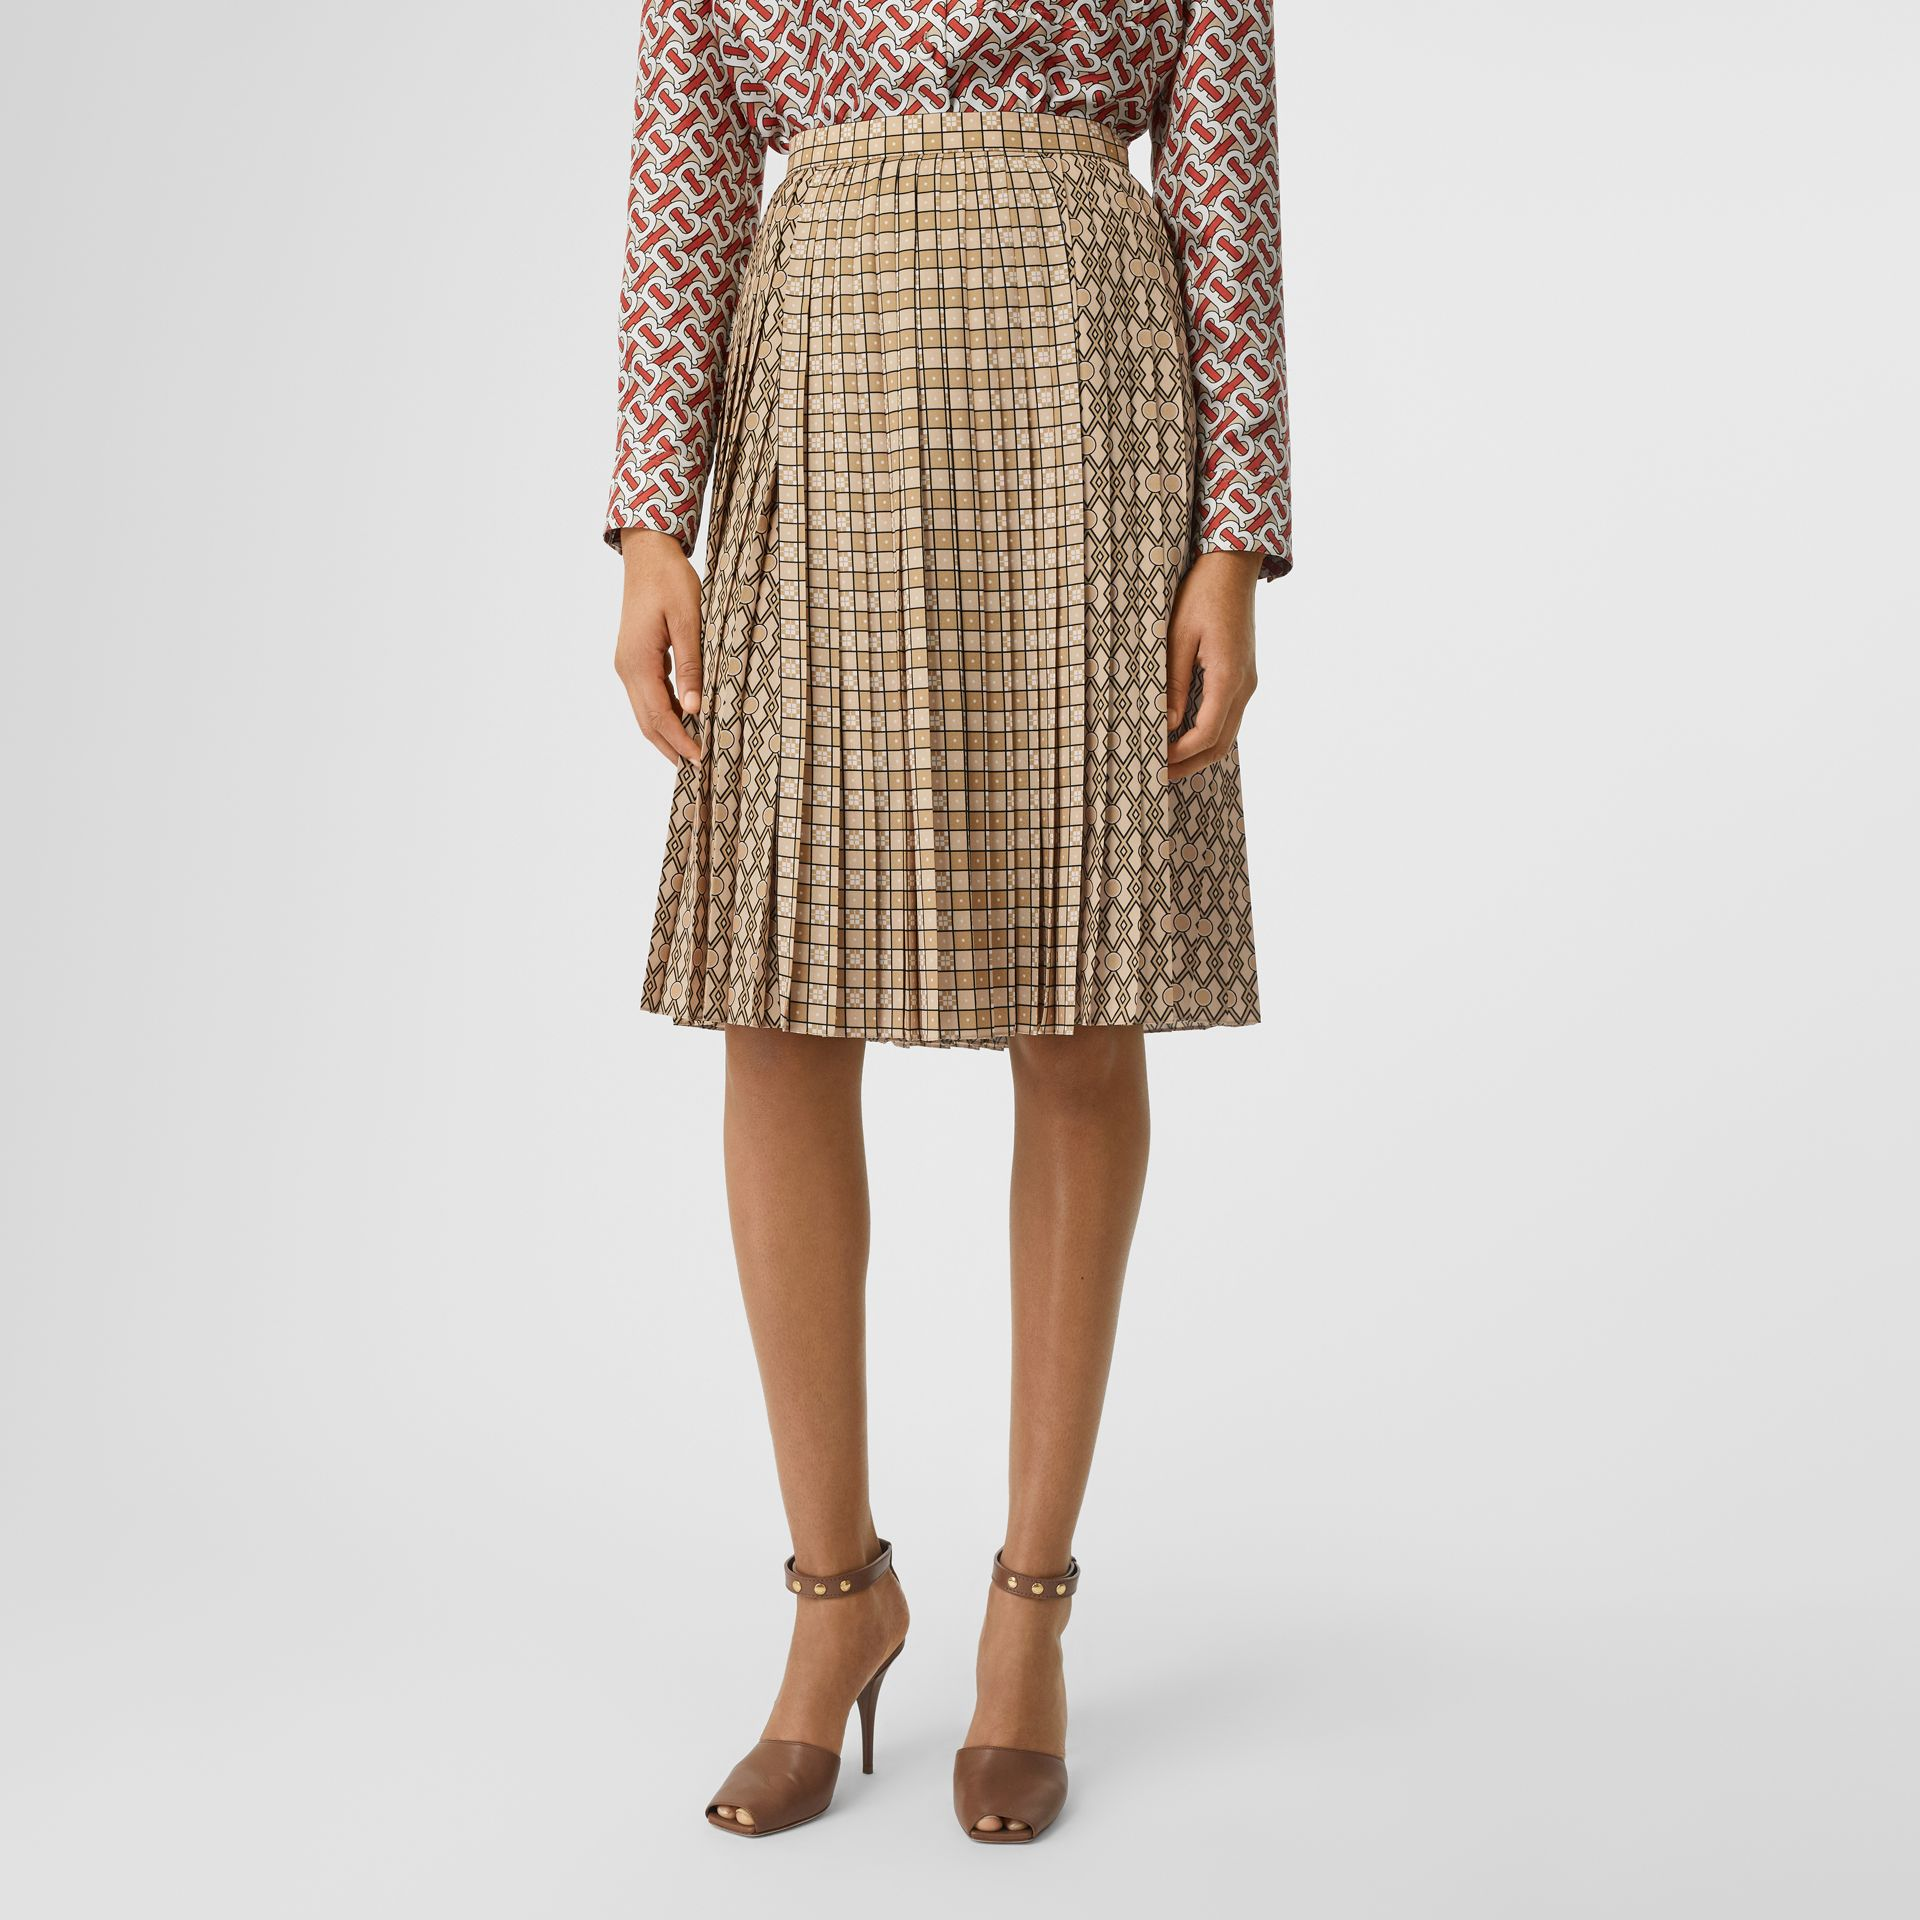 Contrast Graphic Print Pleated Skirt in Latte - Women | Burberry - gallery image 4